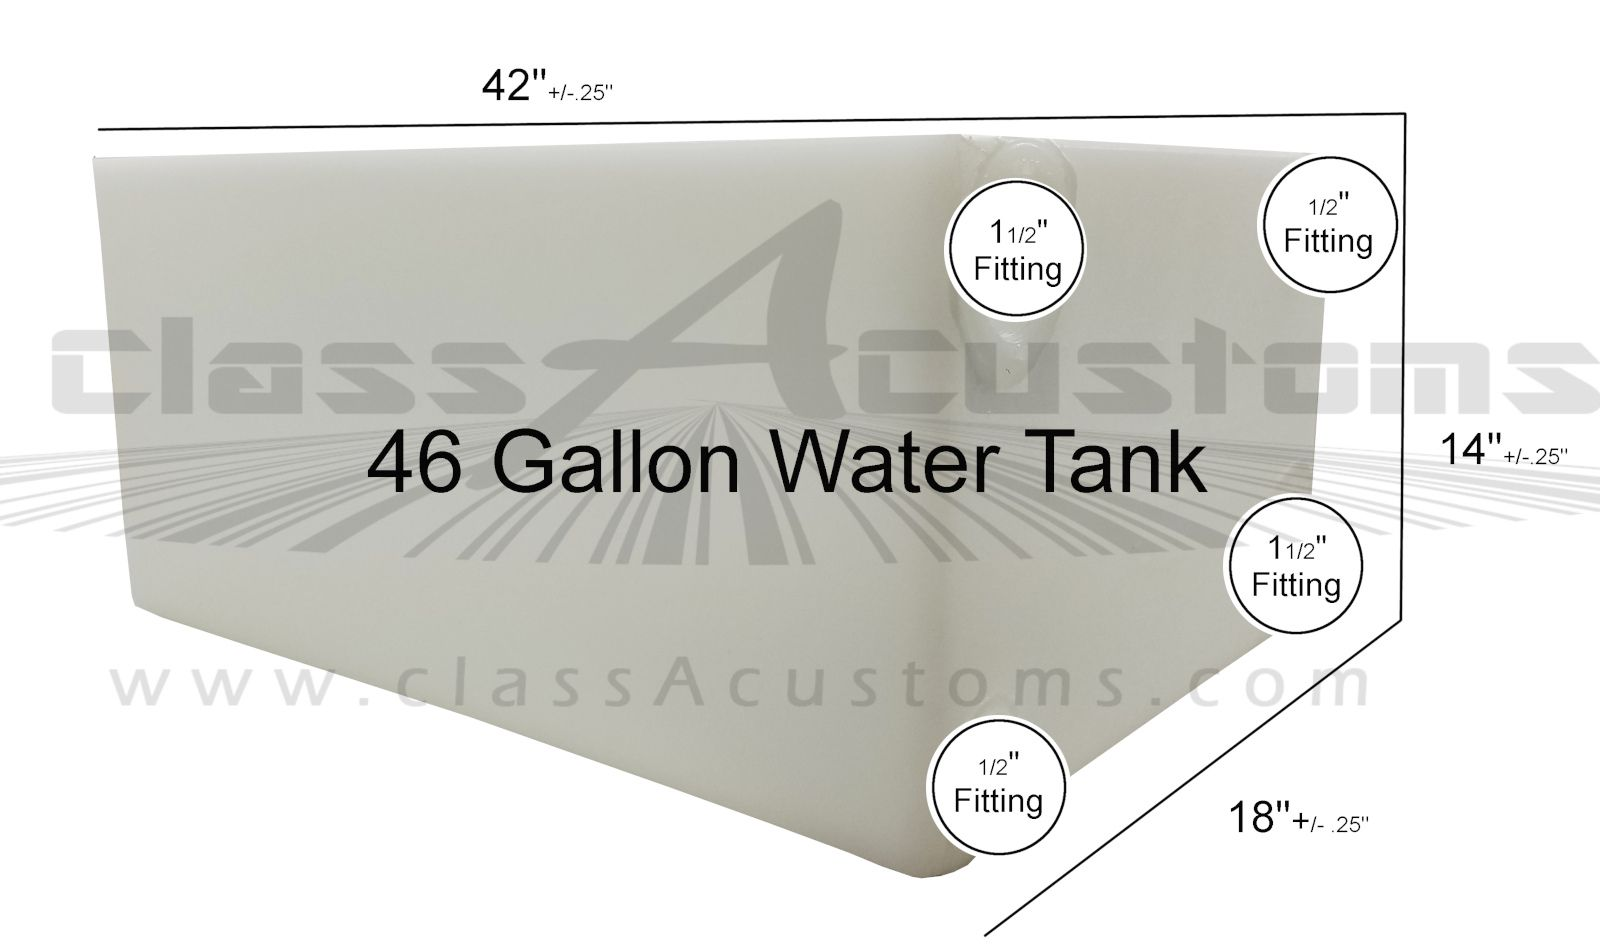 46 Gallon Fresh Gray Water Holding Tank Classacustoms Class A Customs Elkhart Indiana Concession Trailer Rv Food Truck Road Water Tank Tank Welcome To Class